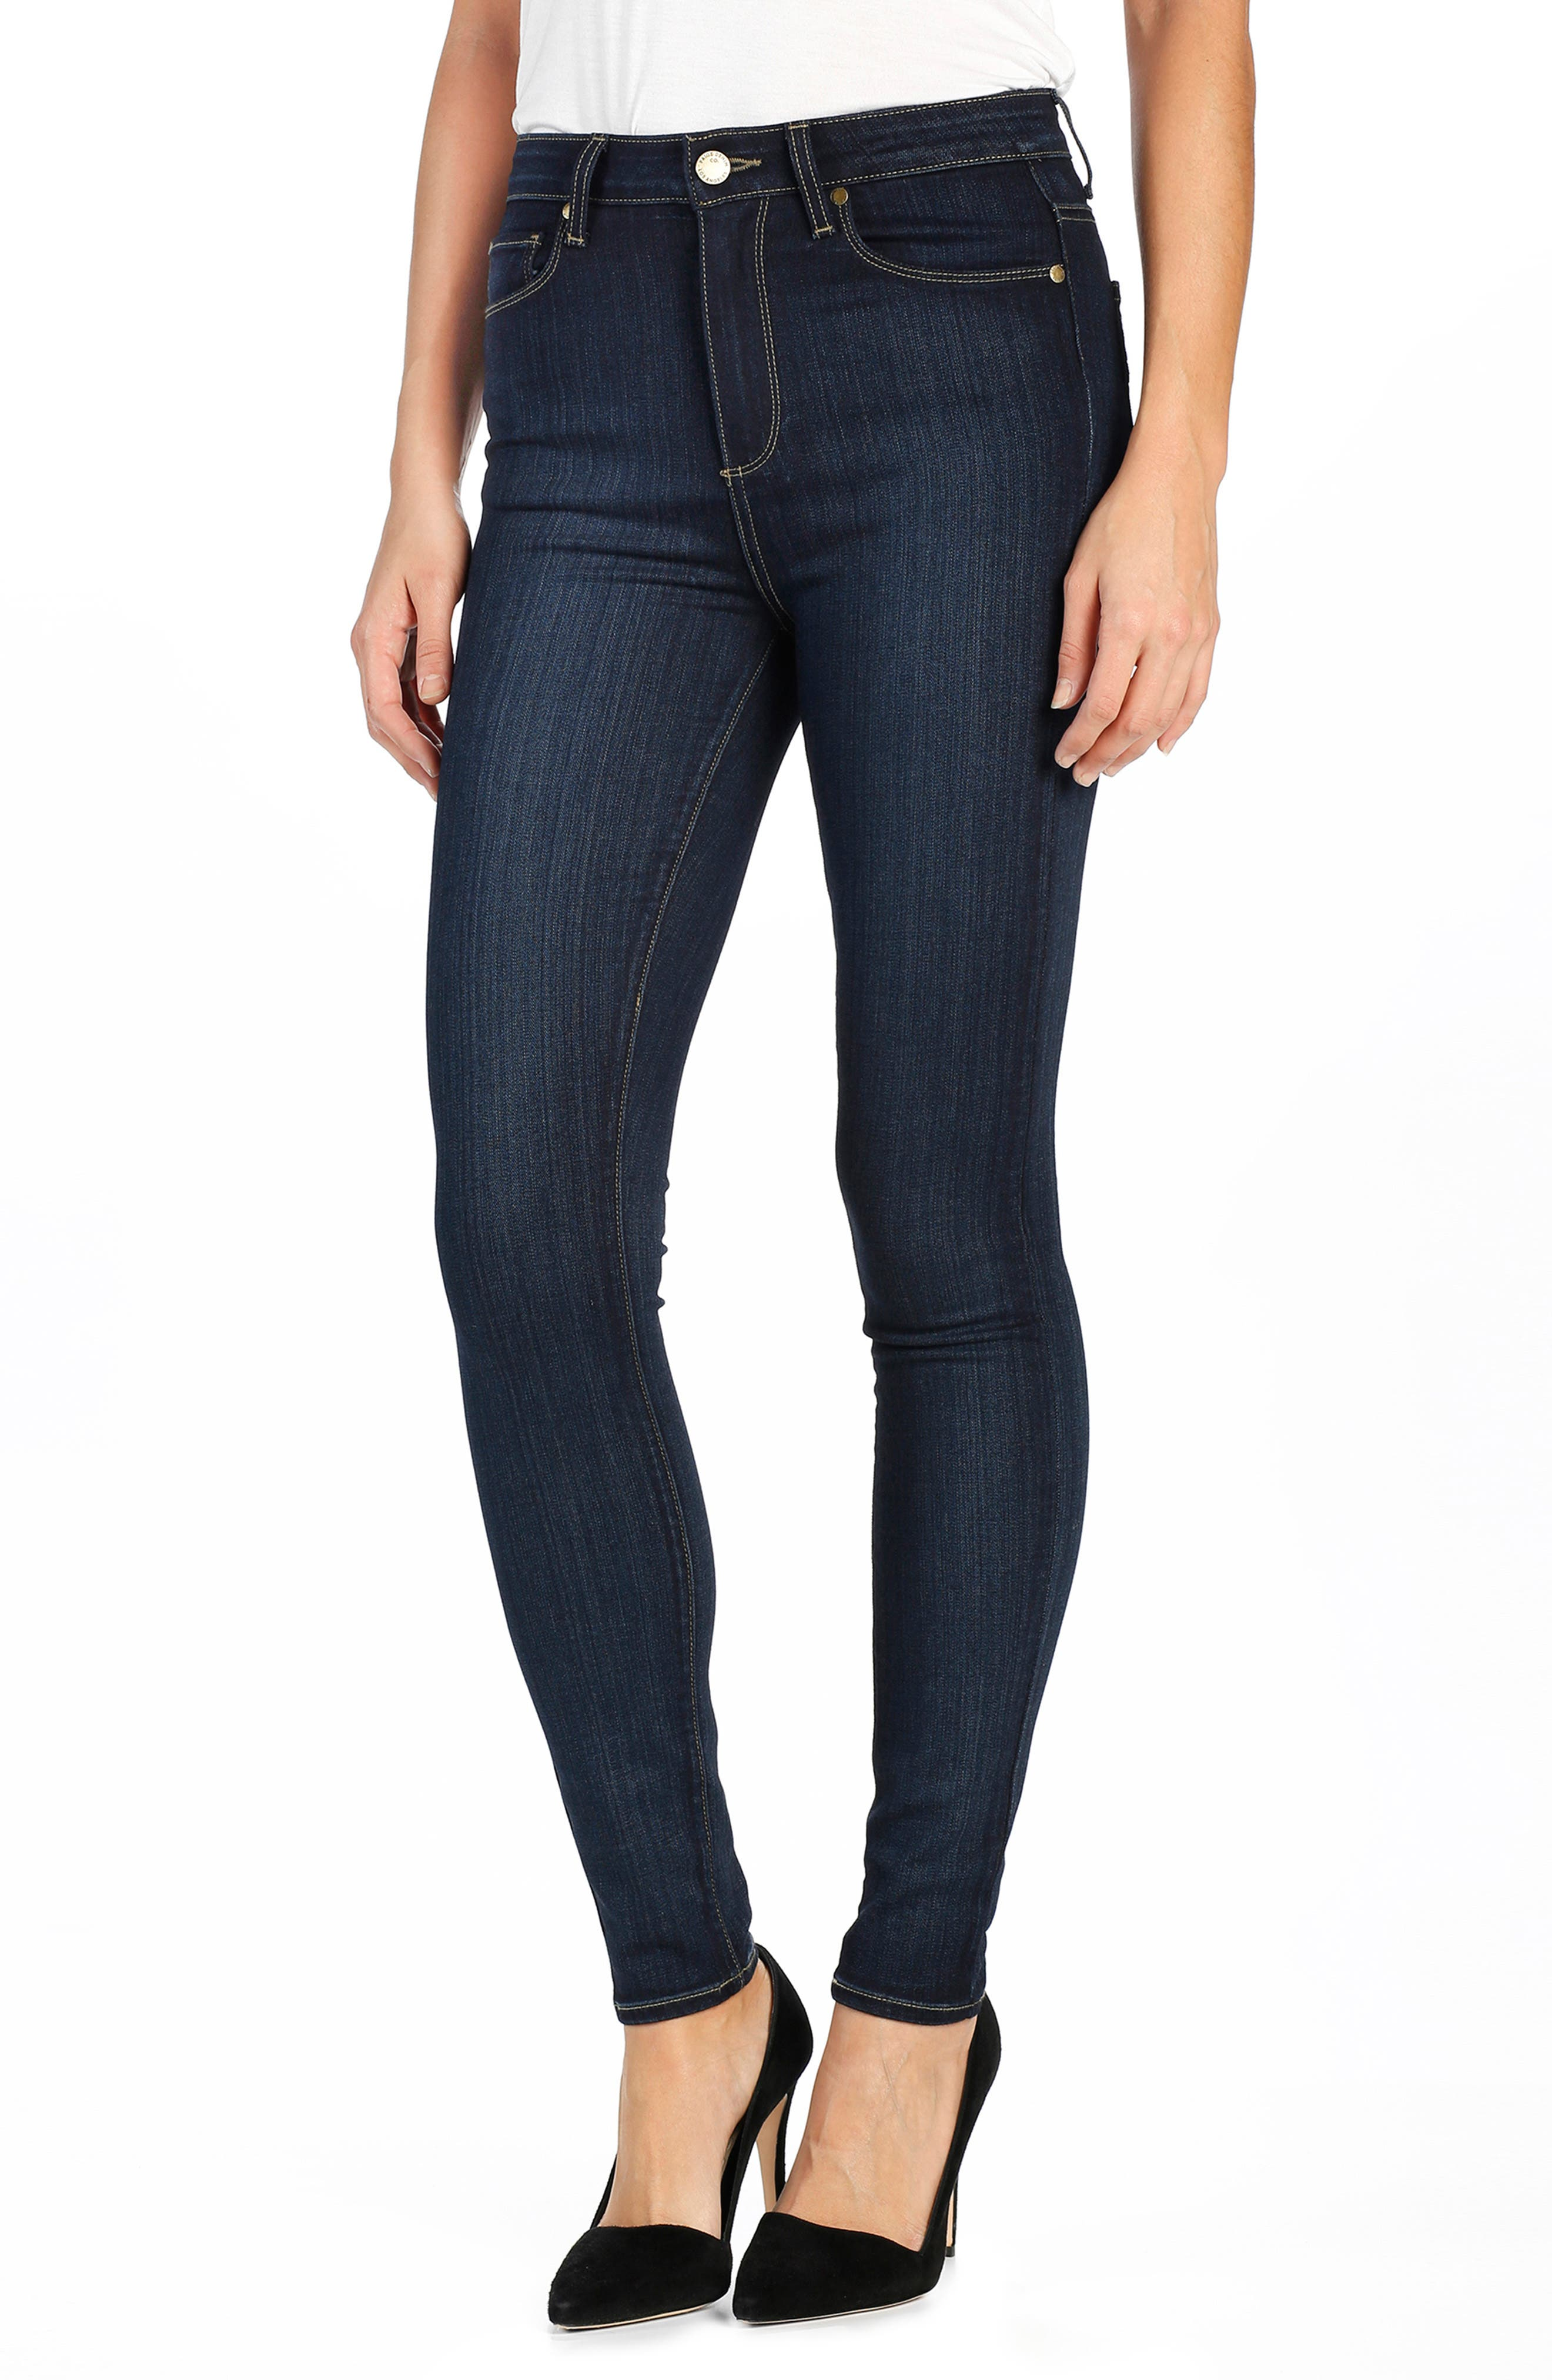 PAIGE Transcend - Margot High Waist Ultra Skinny Jeans, Main, color, LA RUE NO WHISKERS